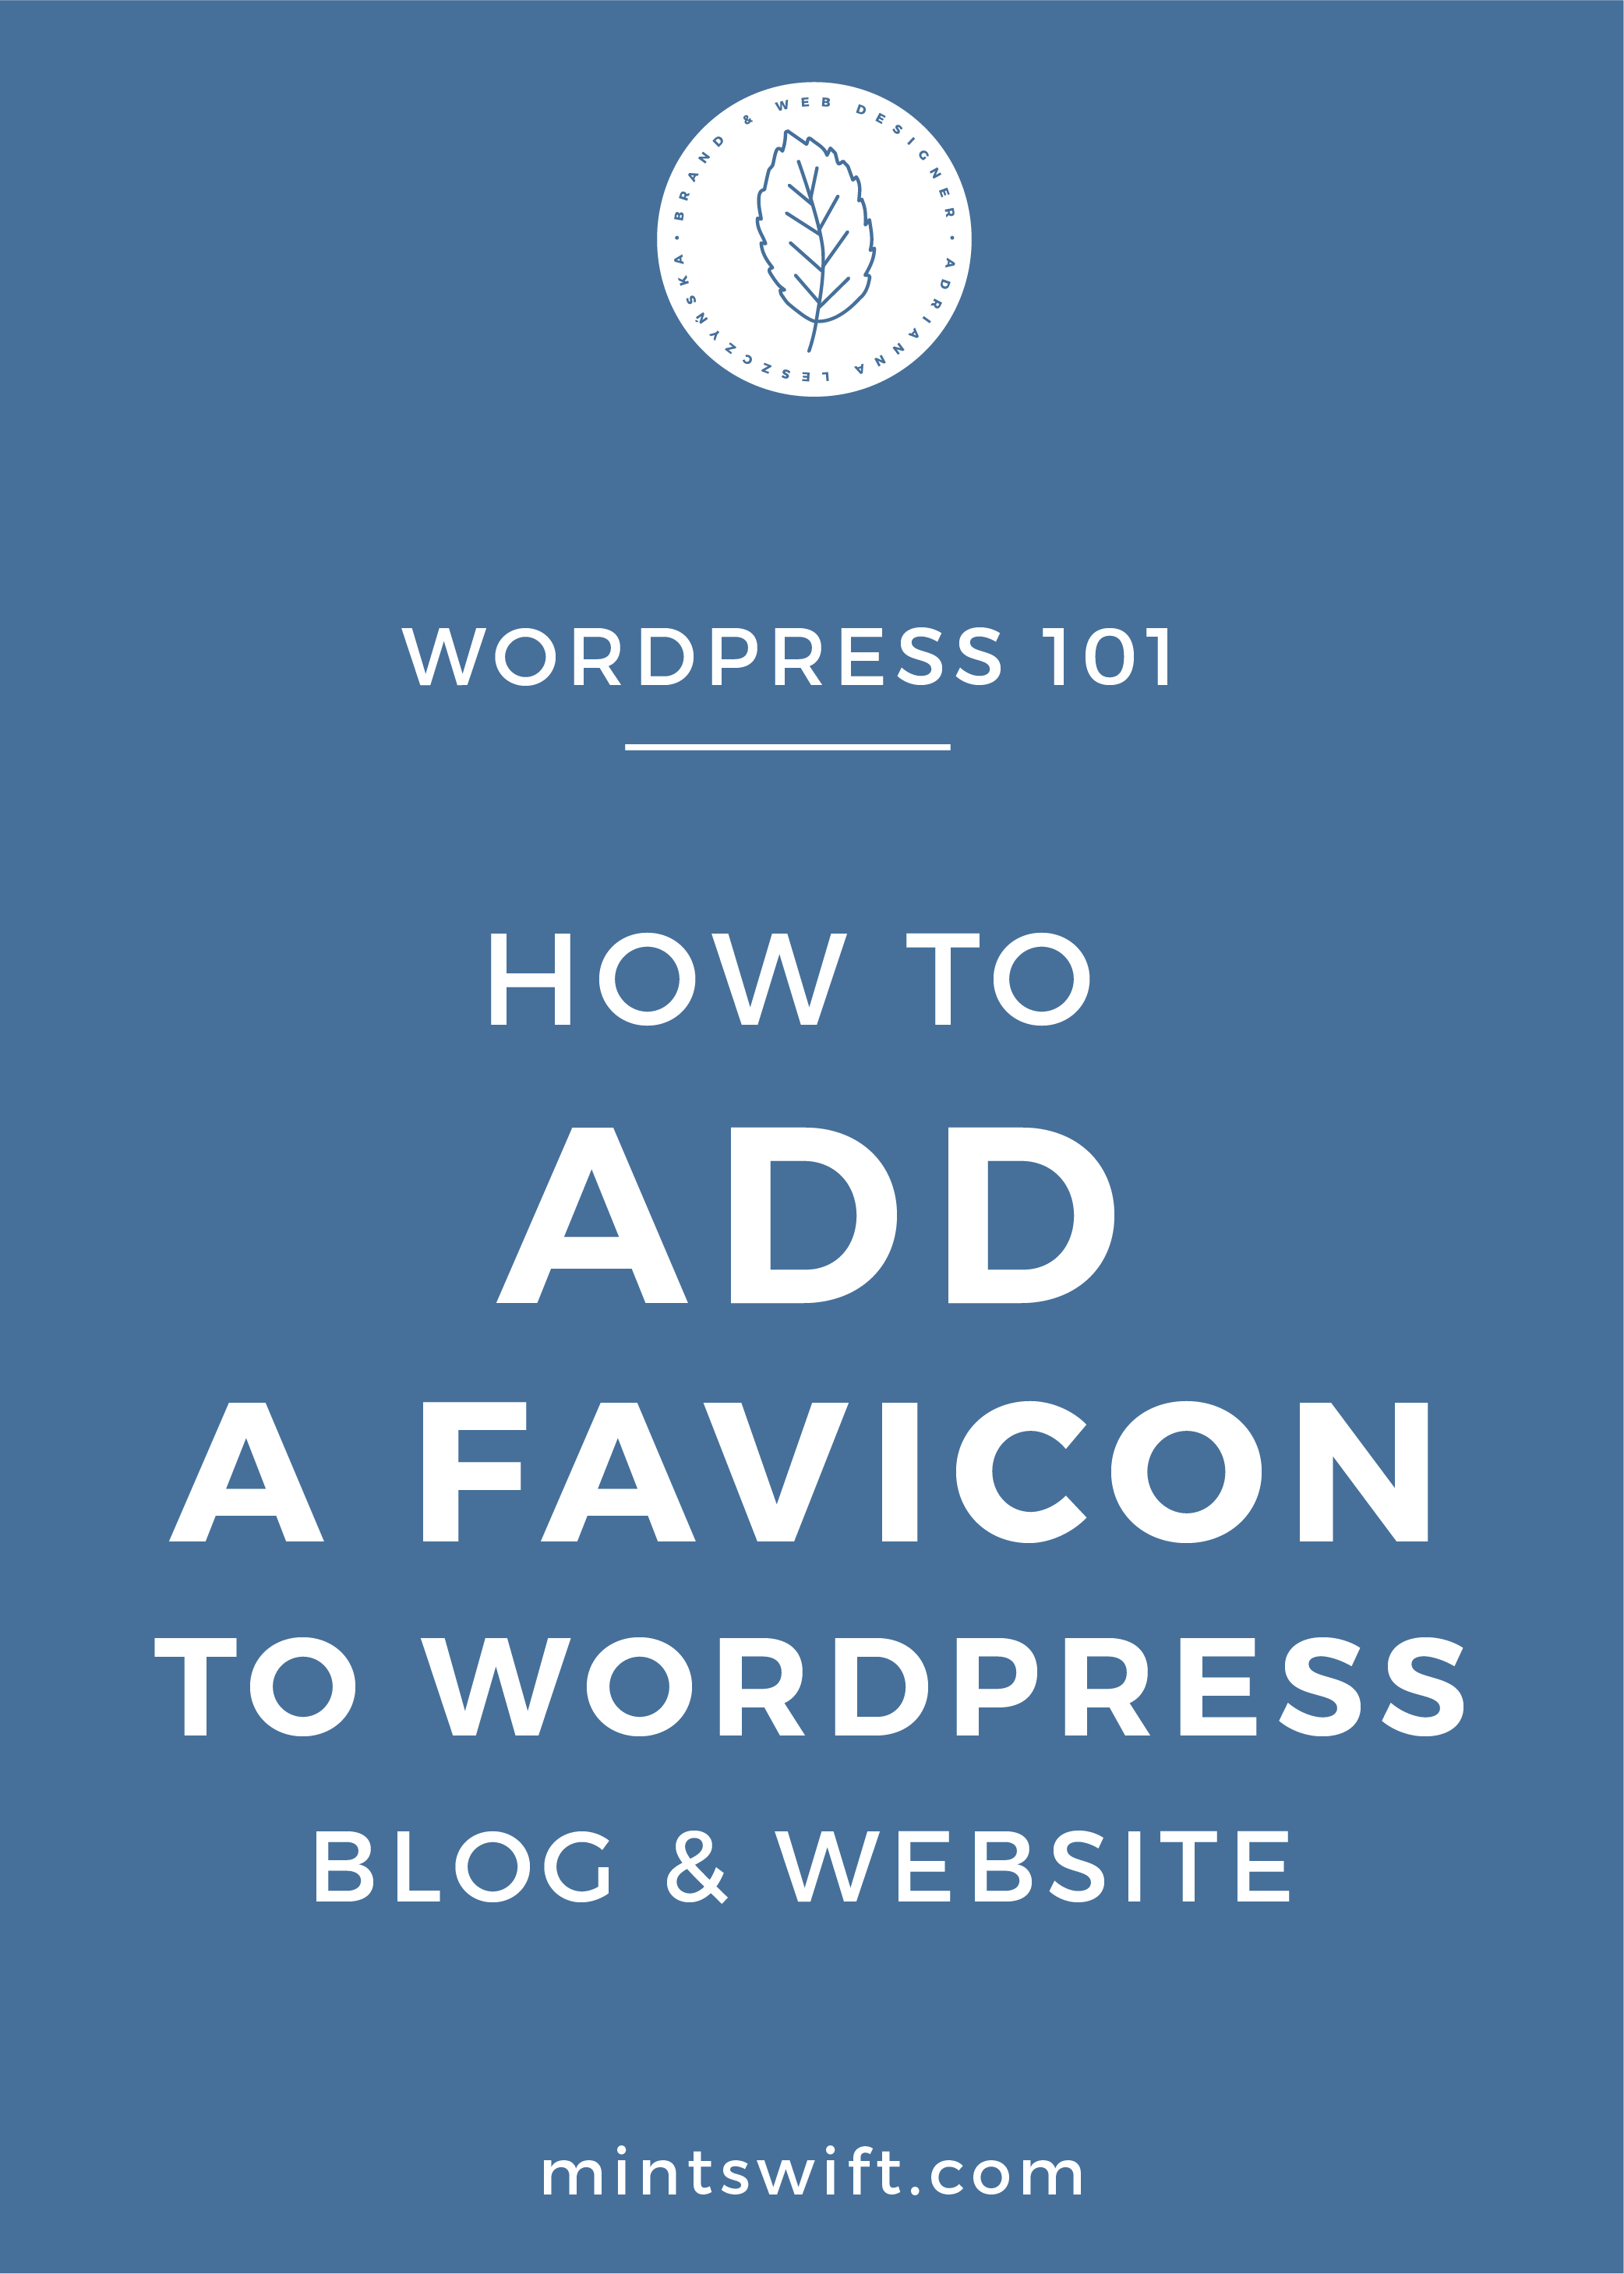 How to Add a Favicon to WordPress Blog & Website - MintSwift